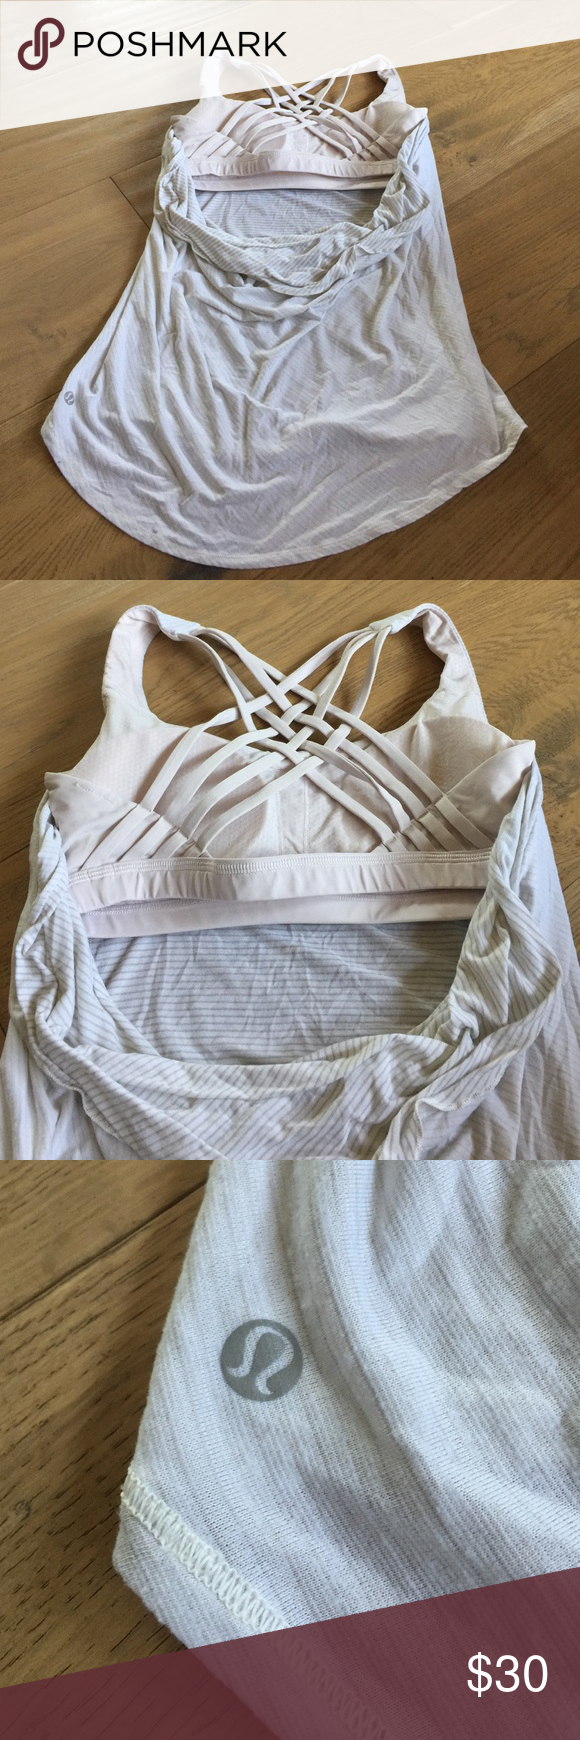 2 in 1 lulu top with sports bra incorporated Rarely worn lululemon athletica Tops